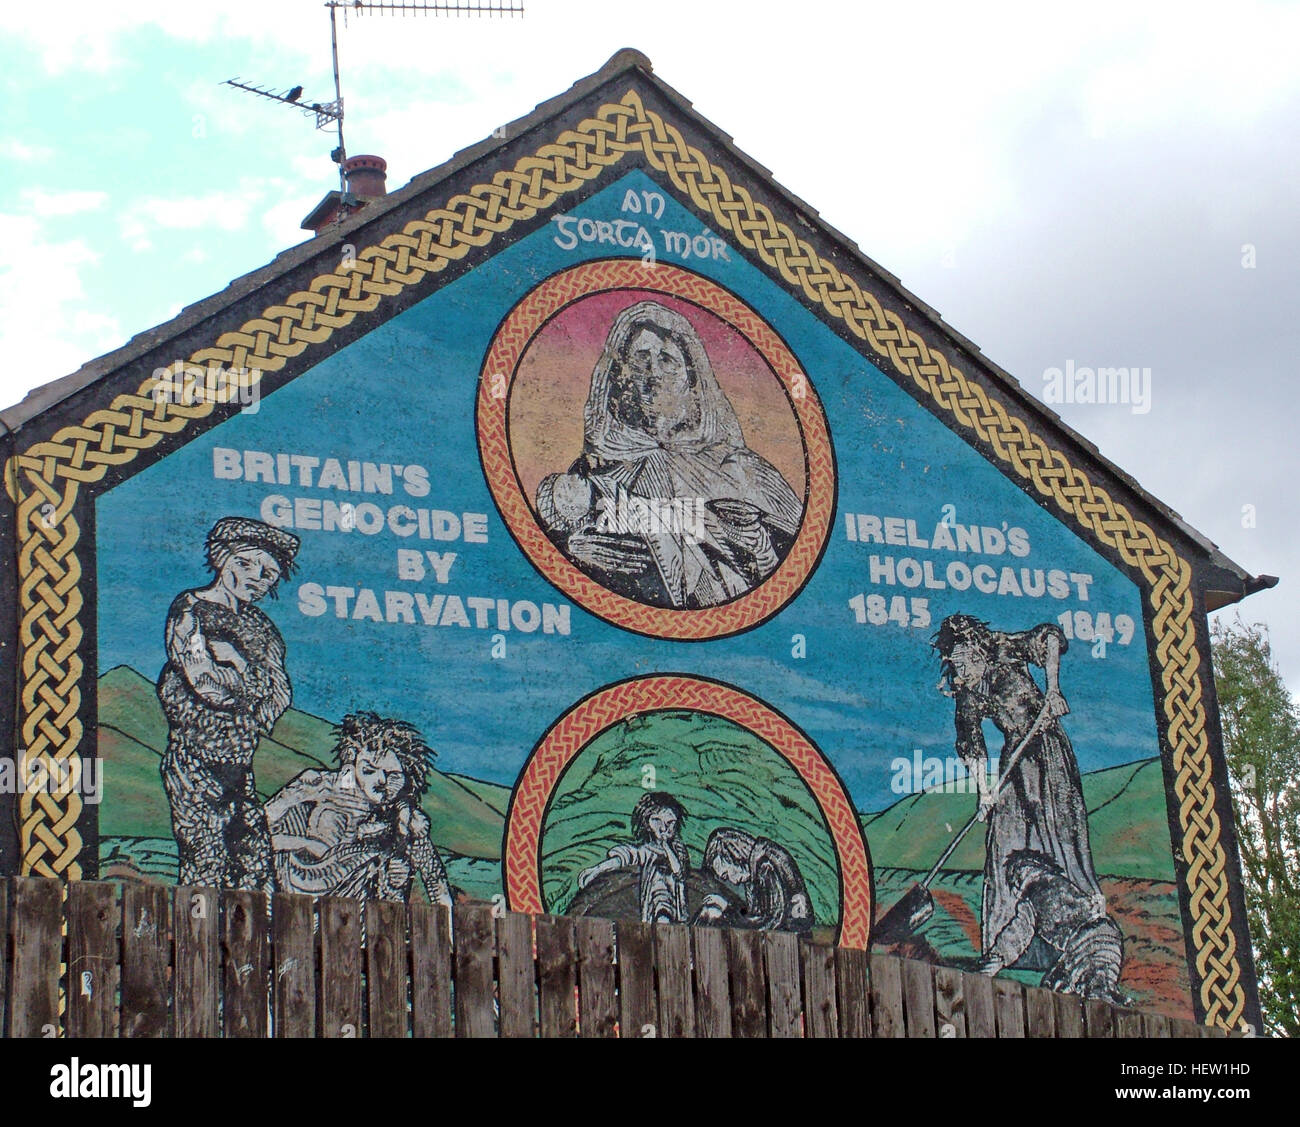 Belfast Falls Rd Republican Mural-Britains Genocide By Starvation, Irelands Holocaust on housing estate gable end - Stock Image